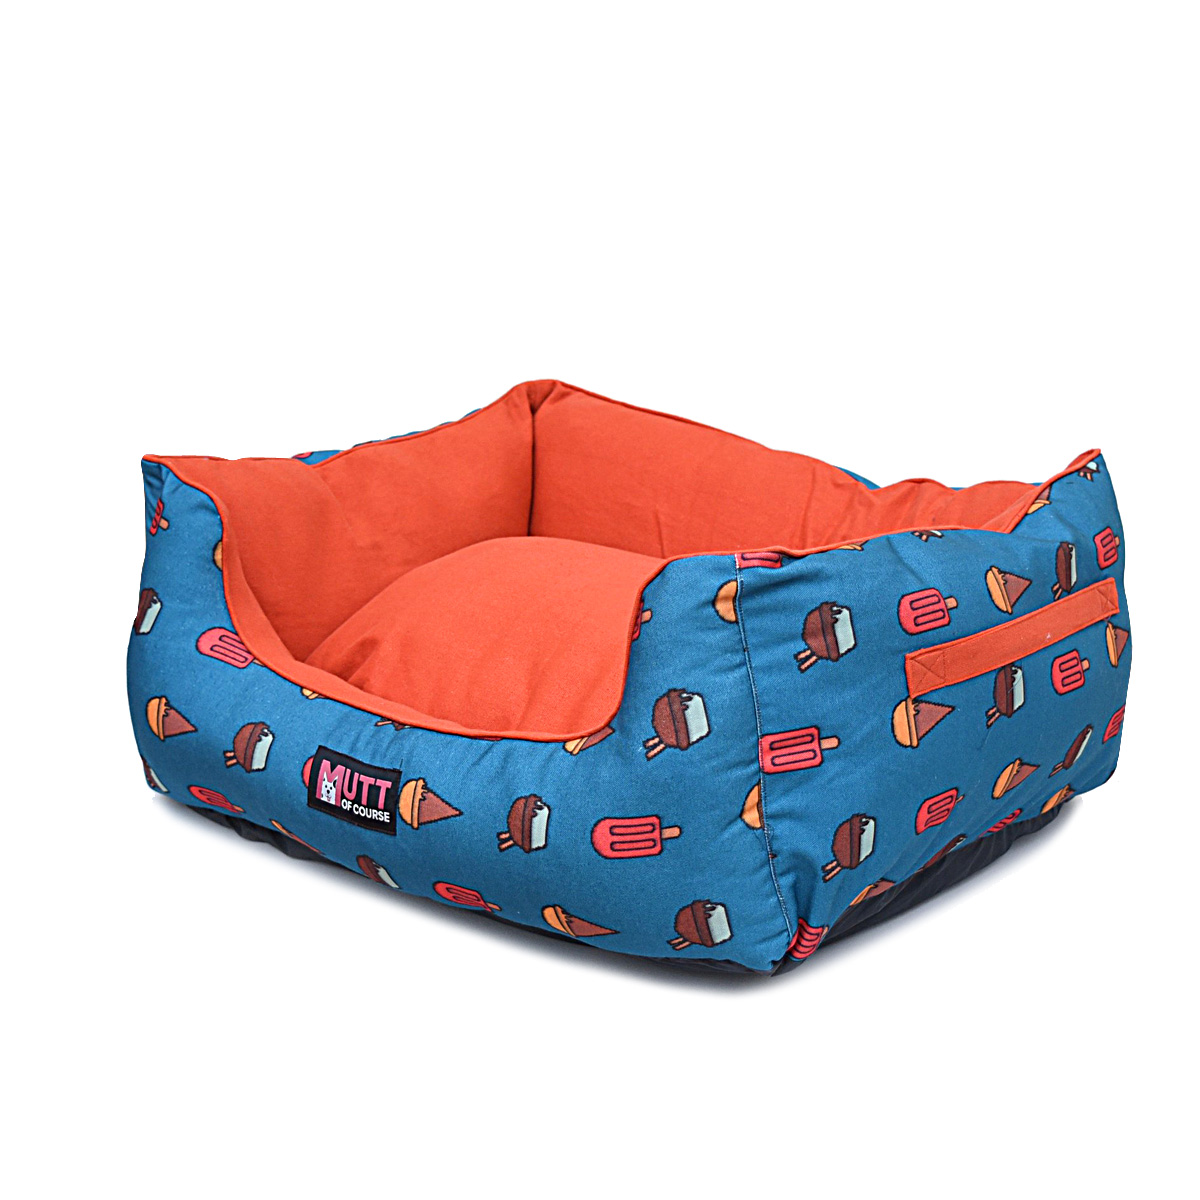 Mutt Of Course Lounger Bed For Dogs - Pupscicles - Xlarge